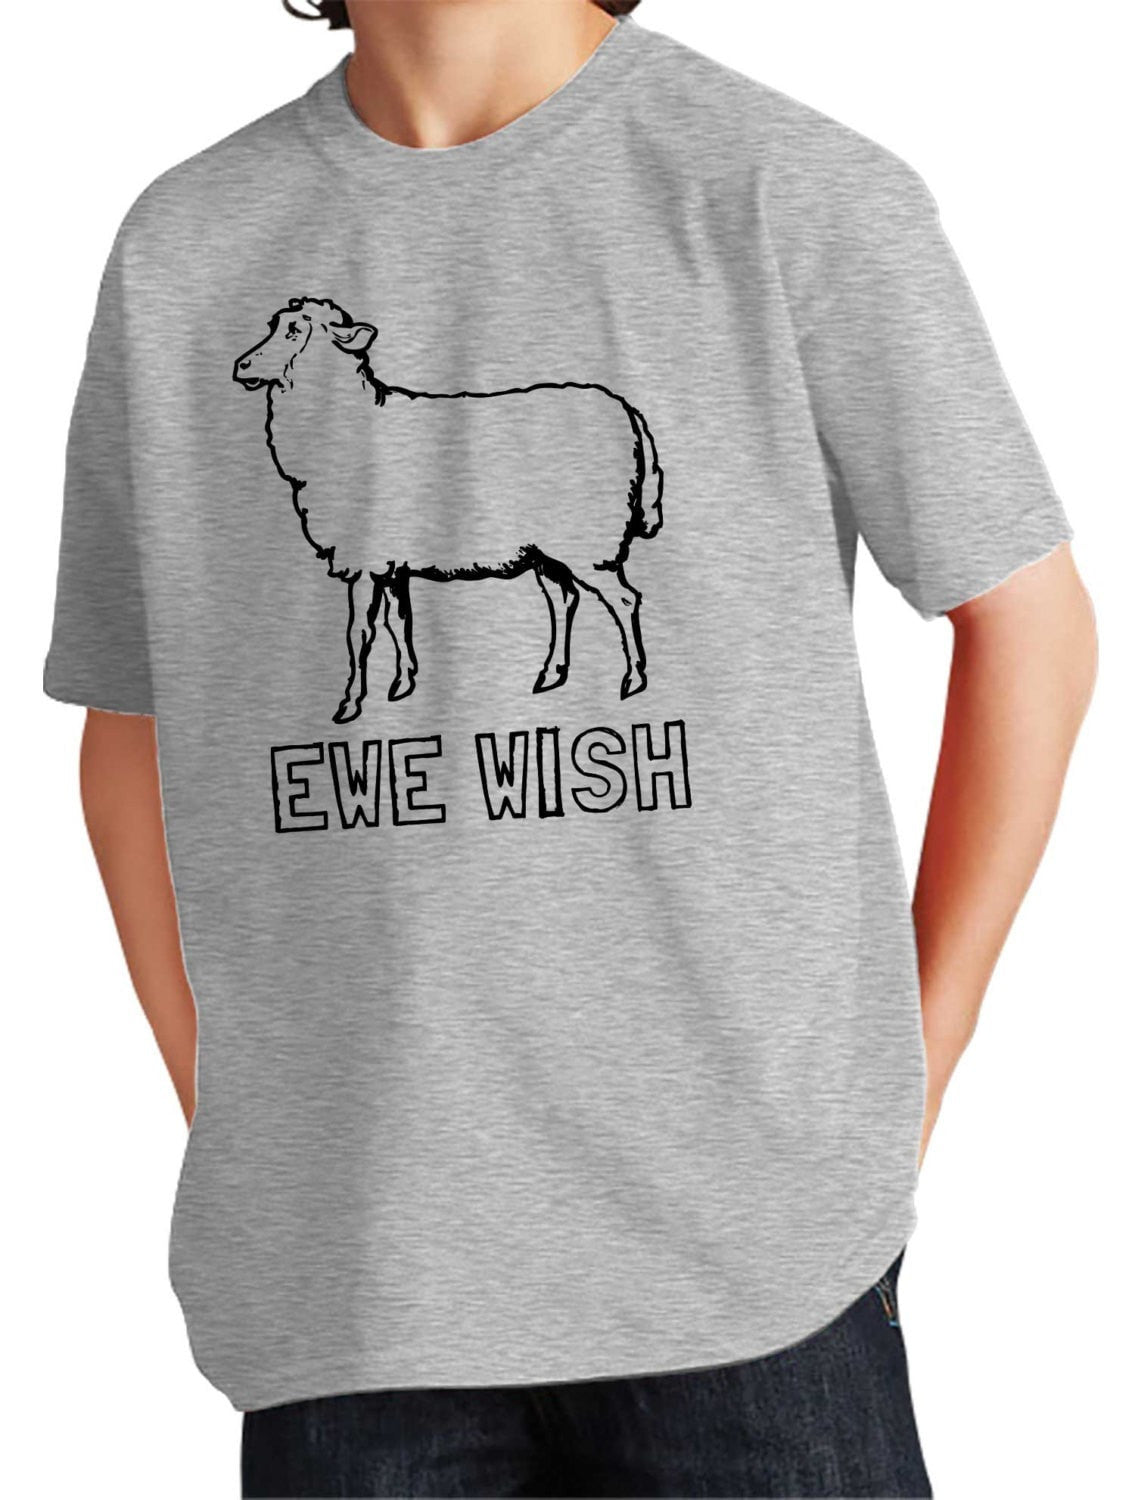 Boy's Ewe Wish T-Shirt Funny Sheep Shirt